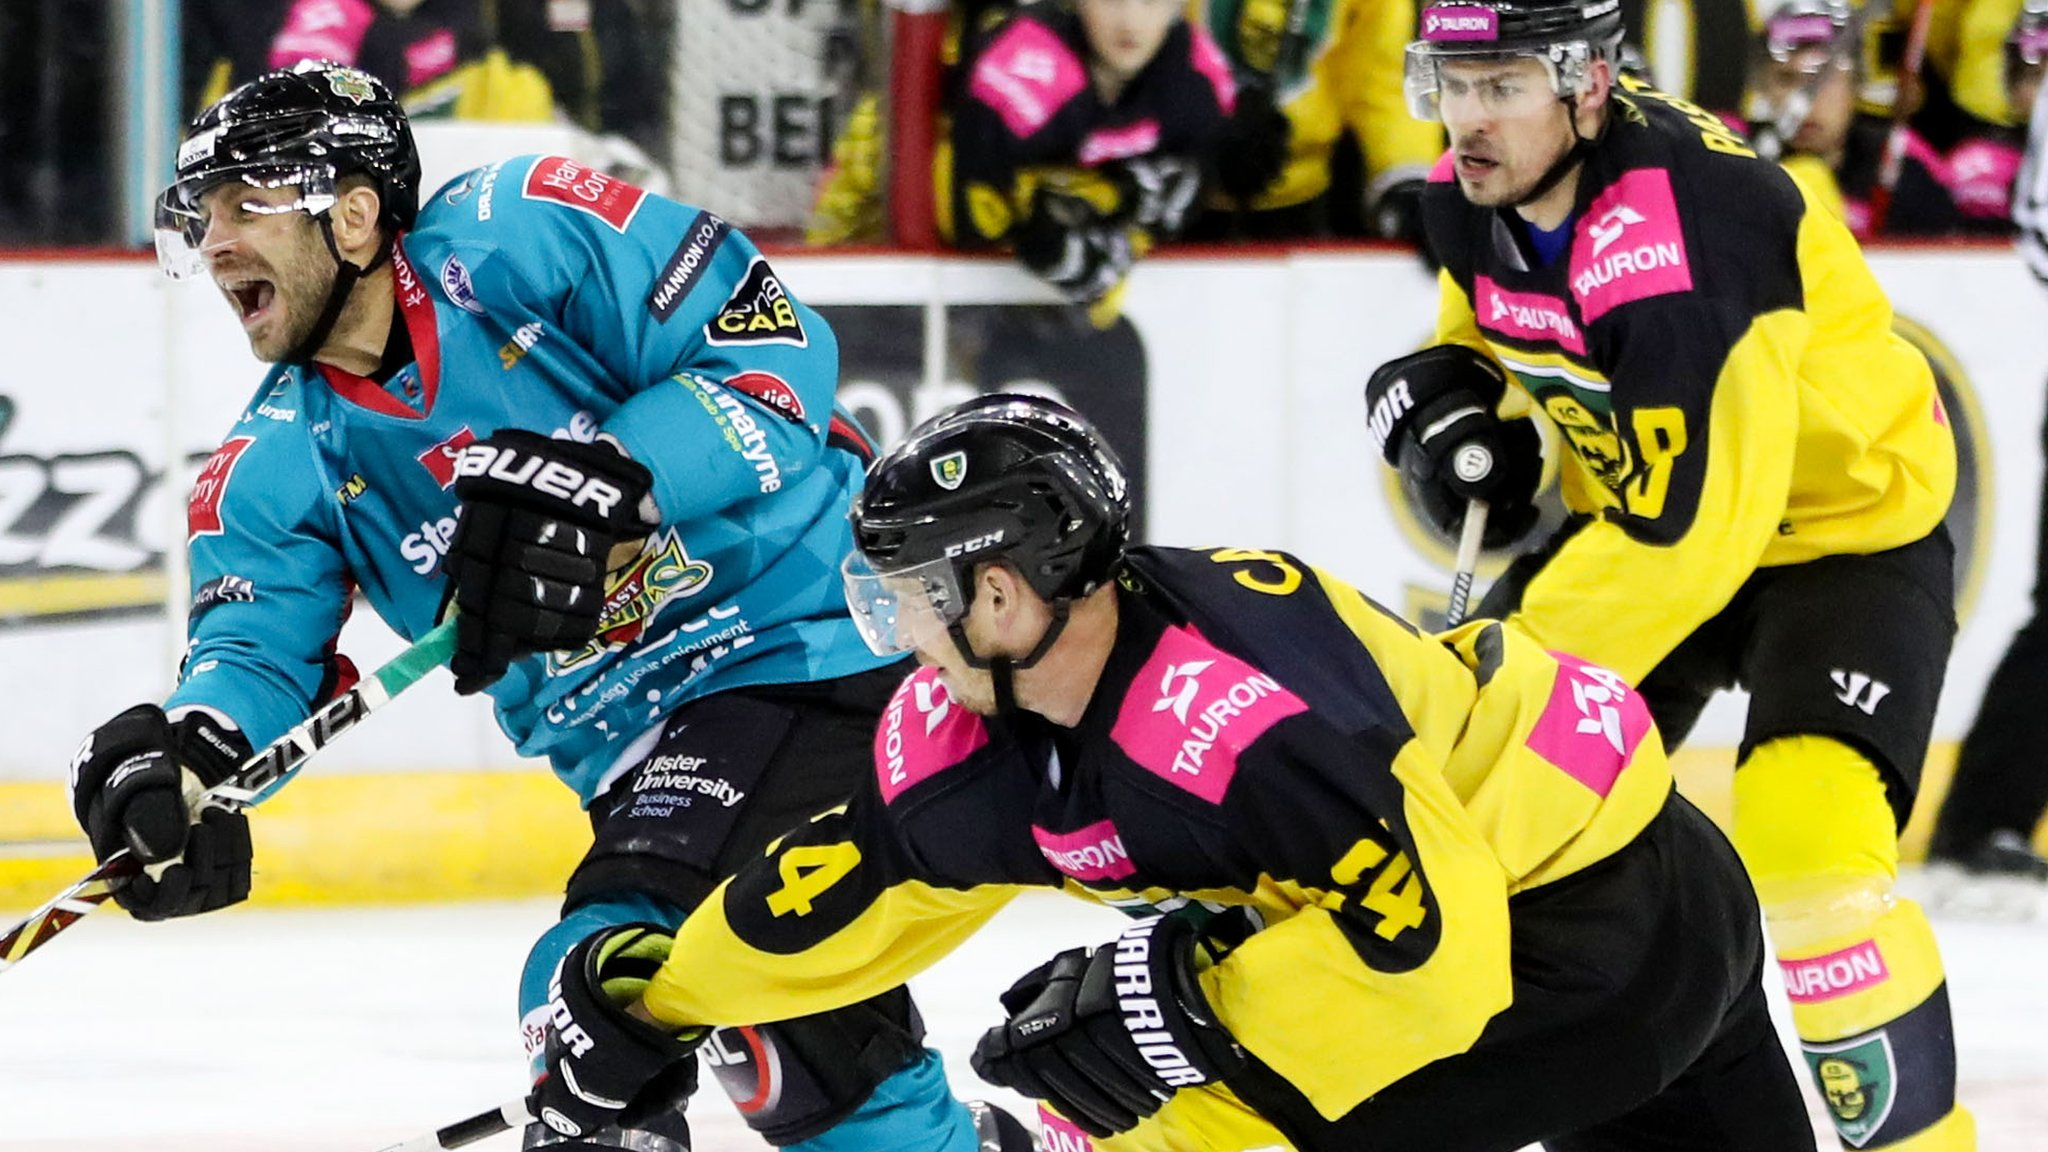 Continental Cup: Belfast Giants through to Super Final despite defeat against Katowice